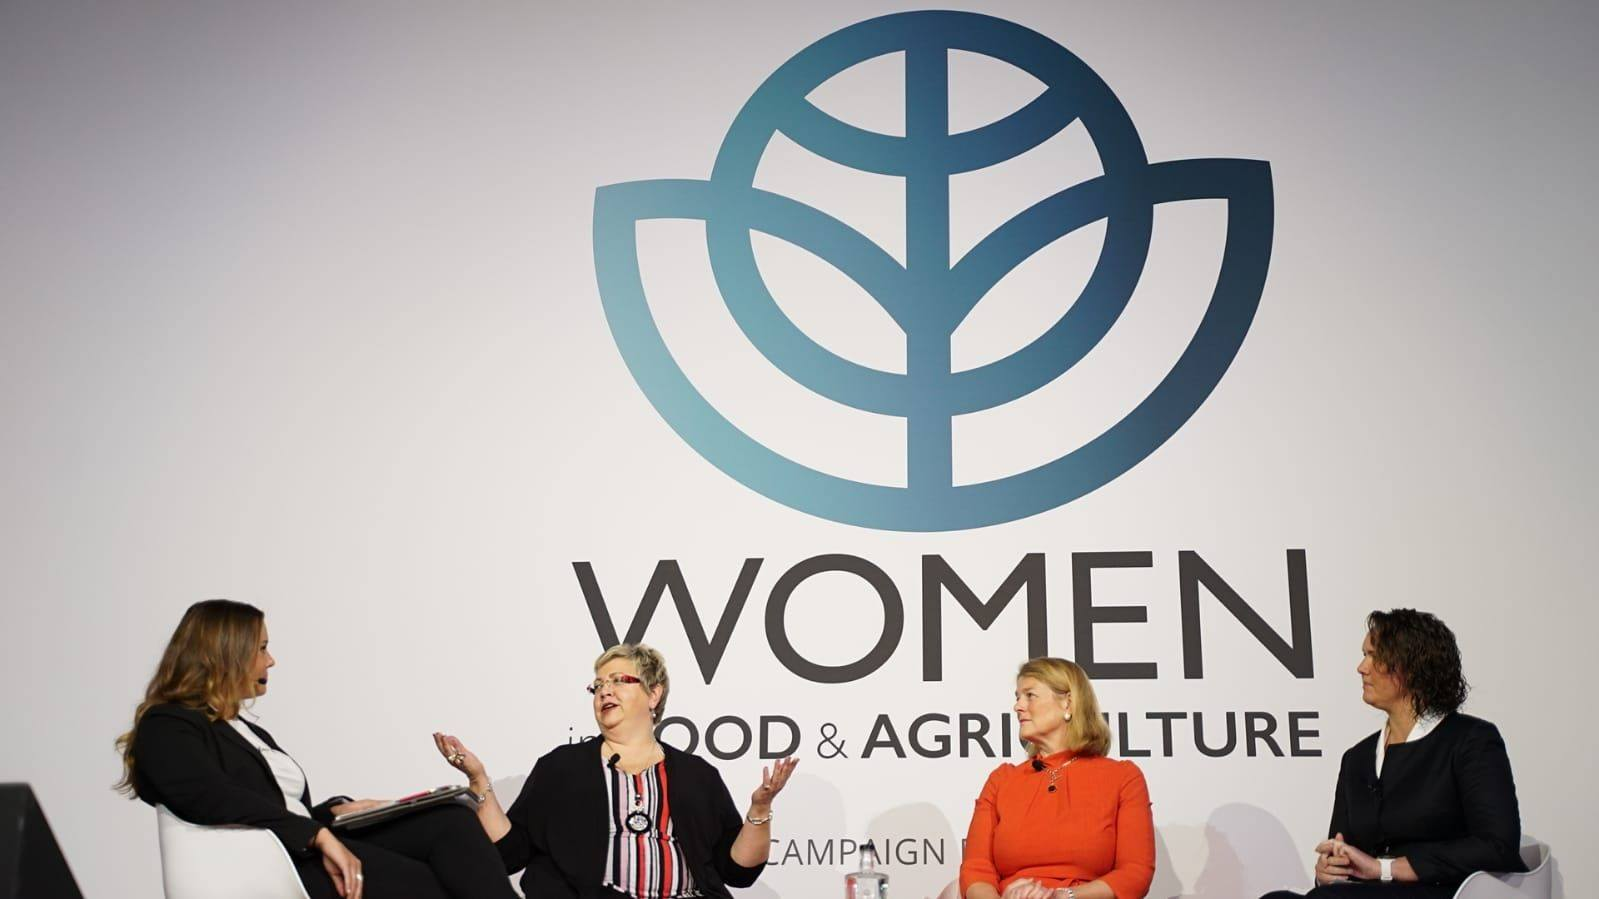 women in food and agriculture summit panel discussion amsterdam 2019